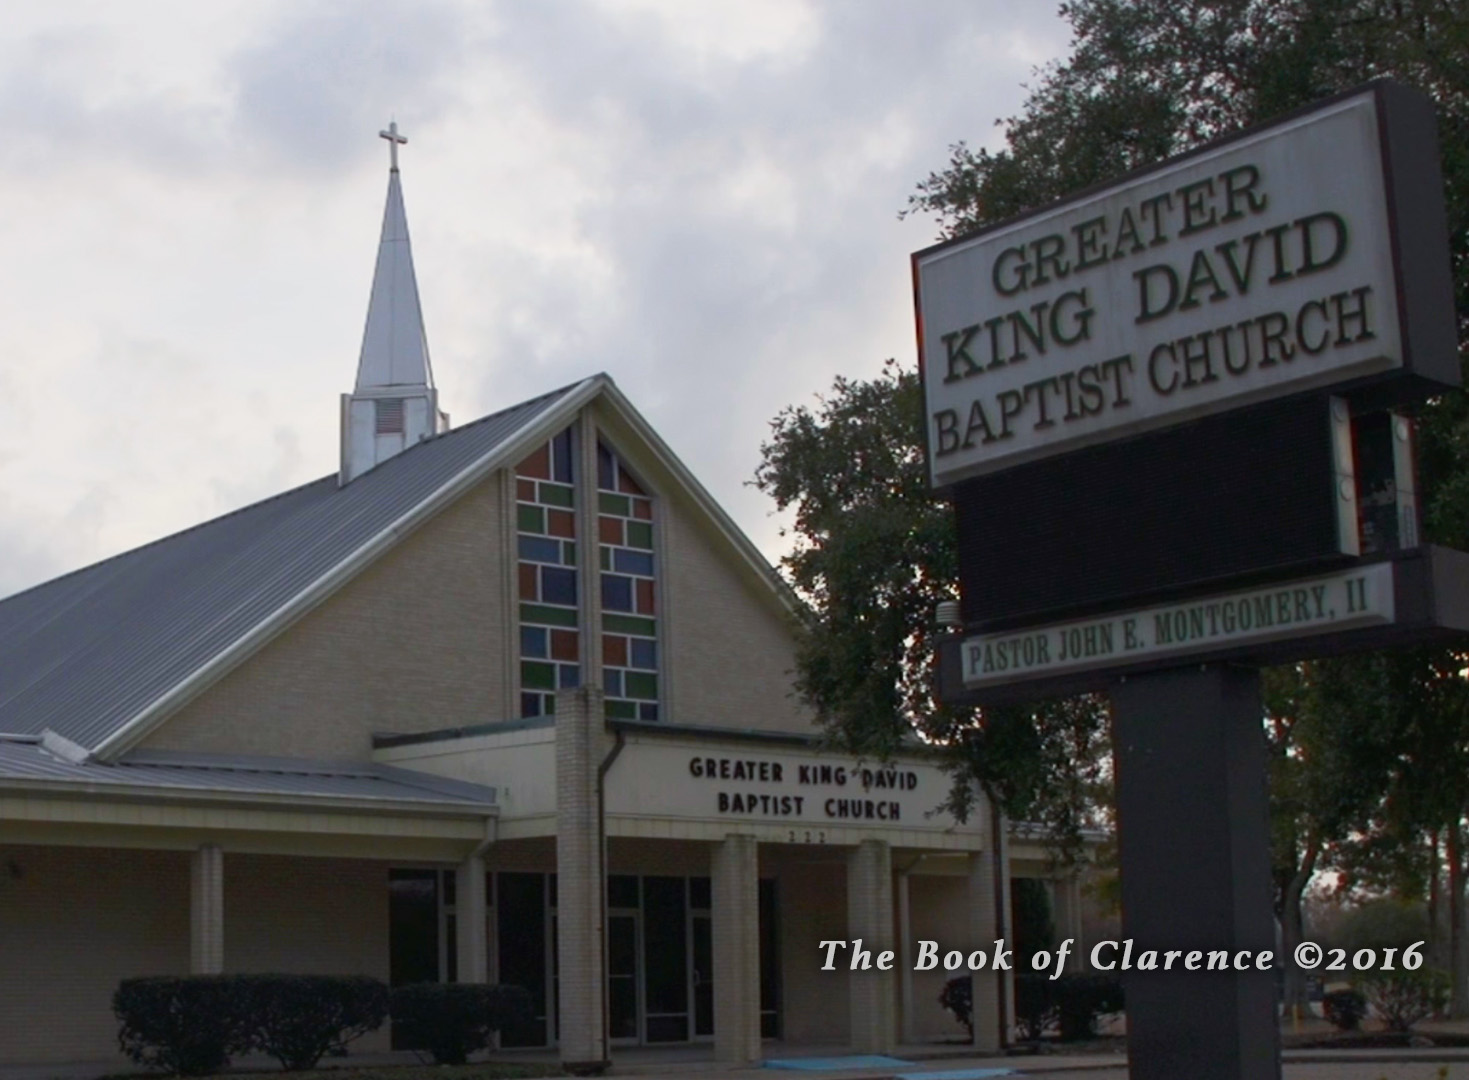 Greater King David Church, The Book of Clarence